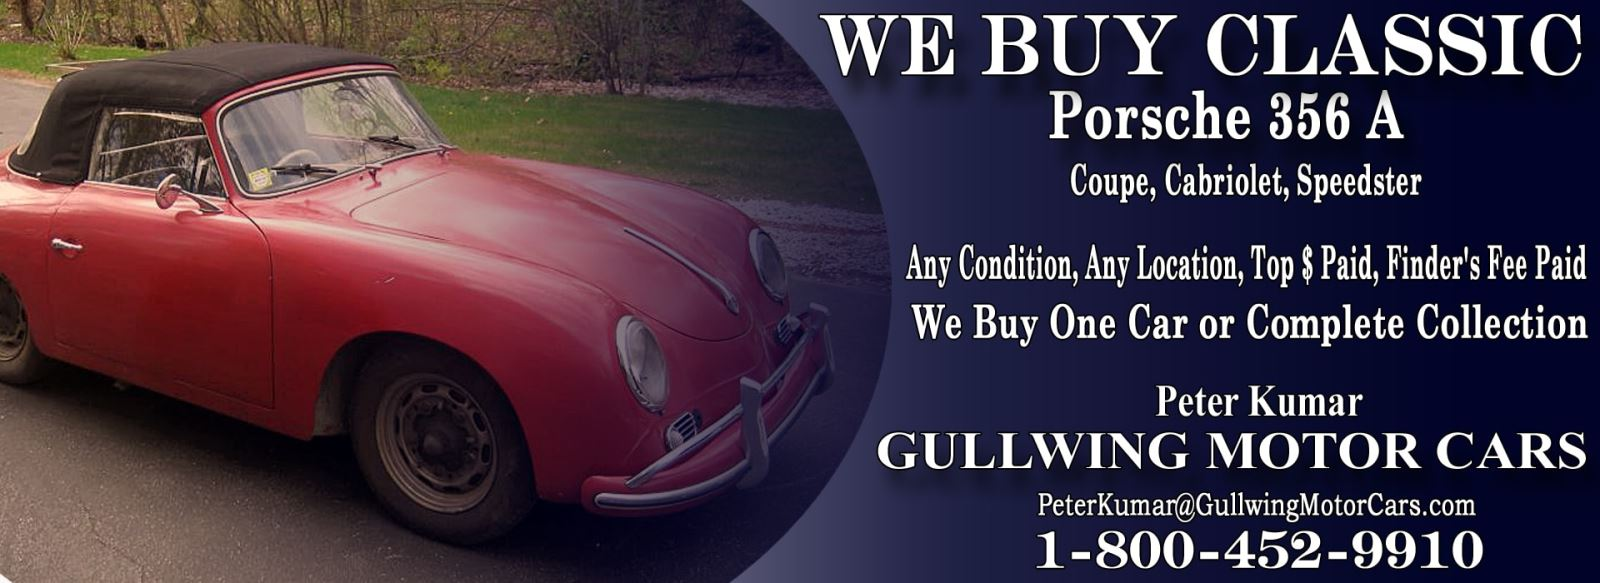 Classic 1958 Porsche 356 A for sale, we buy vintage 58 Porsche 356 A. Call Peter Kumar. Gullwing Motor